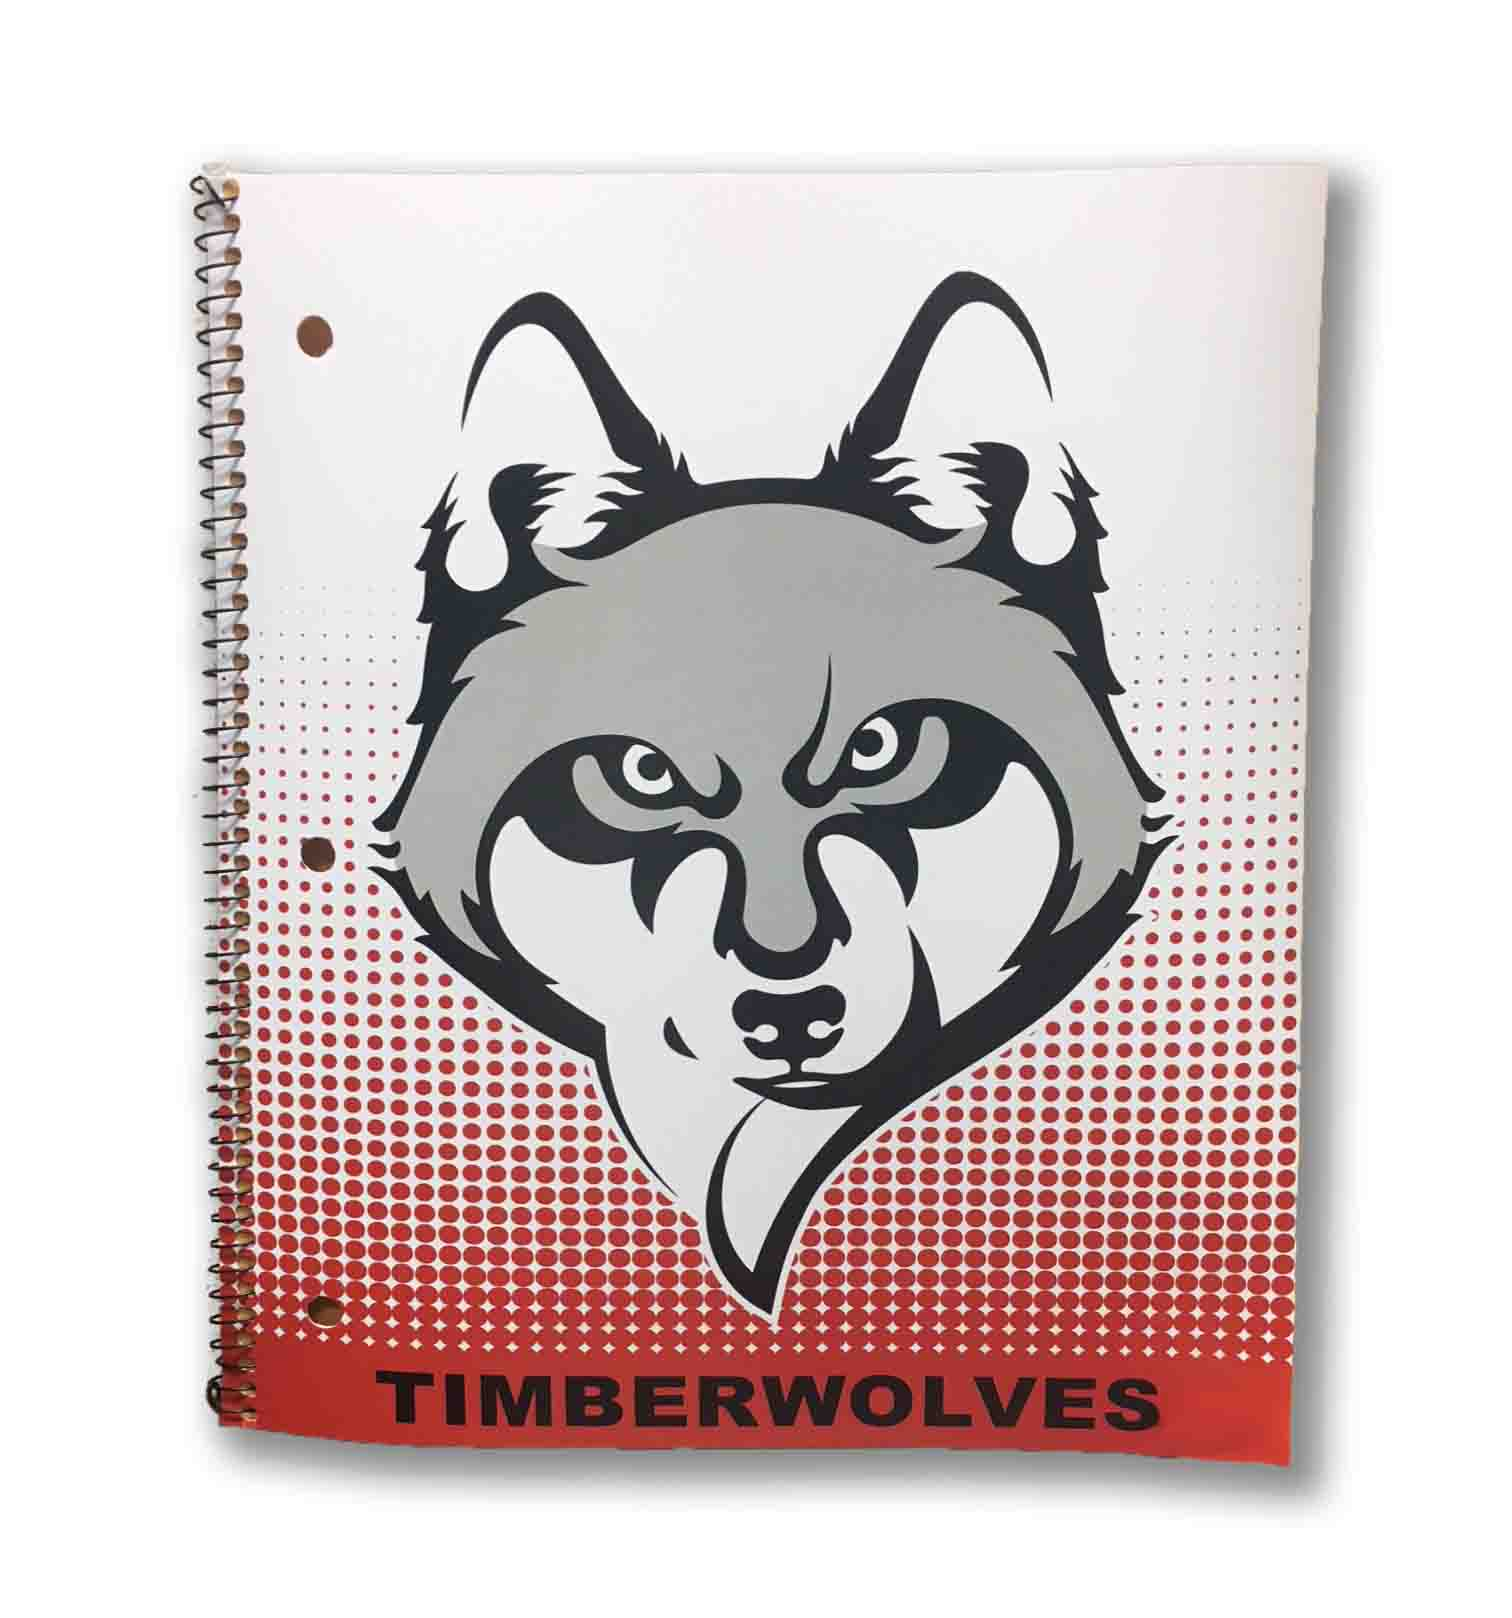 UACCM Timberwolves 1 Subject Notebook